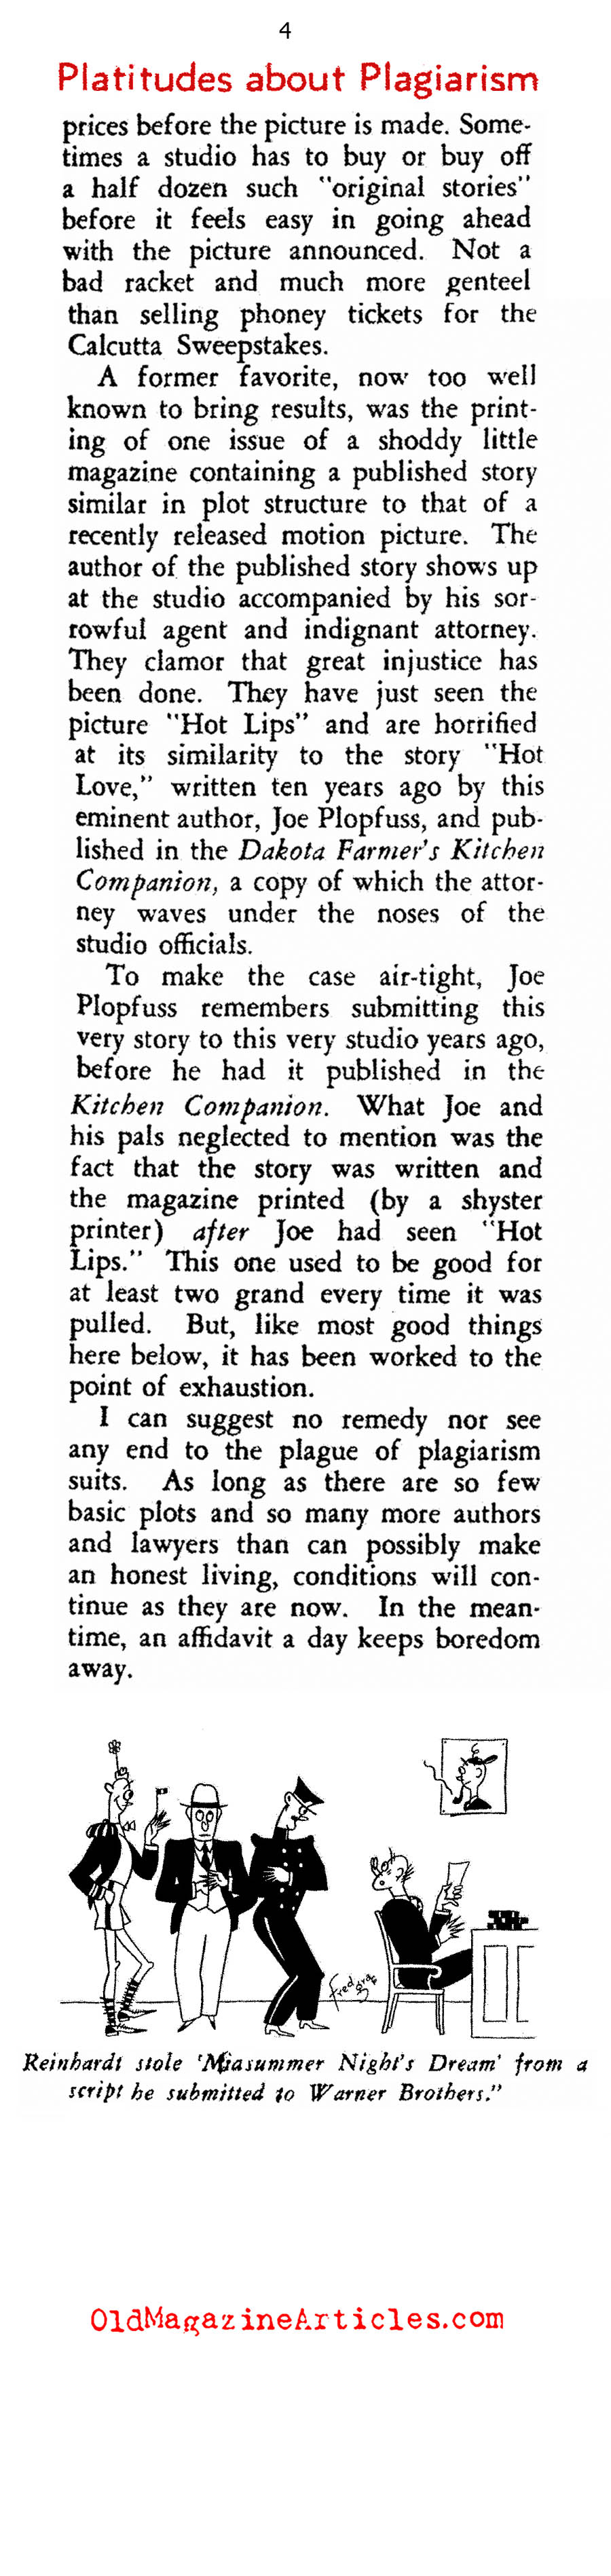 Hollywood and the Game of Bogus Plagiarism Law Suits (Rob Wagner's Script, 1935)